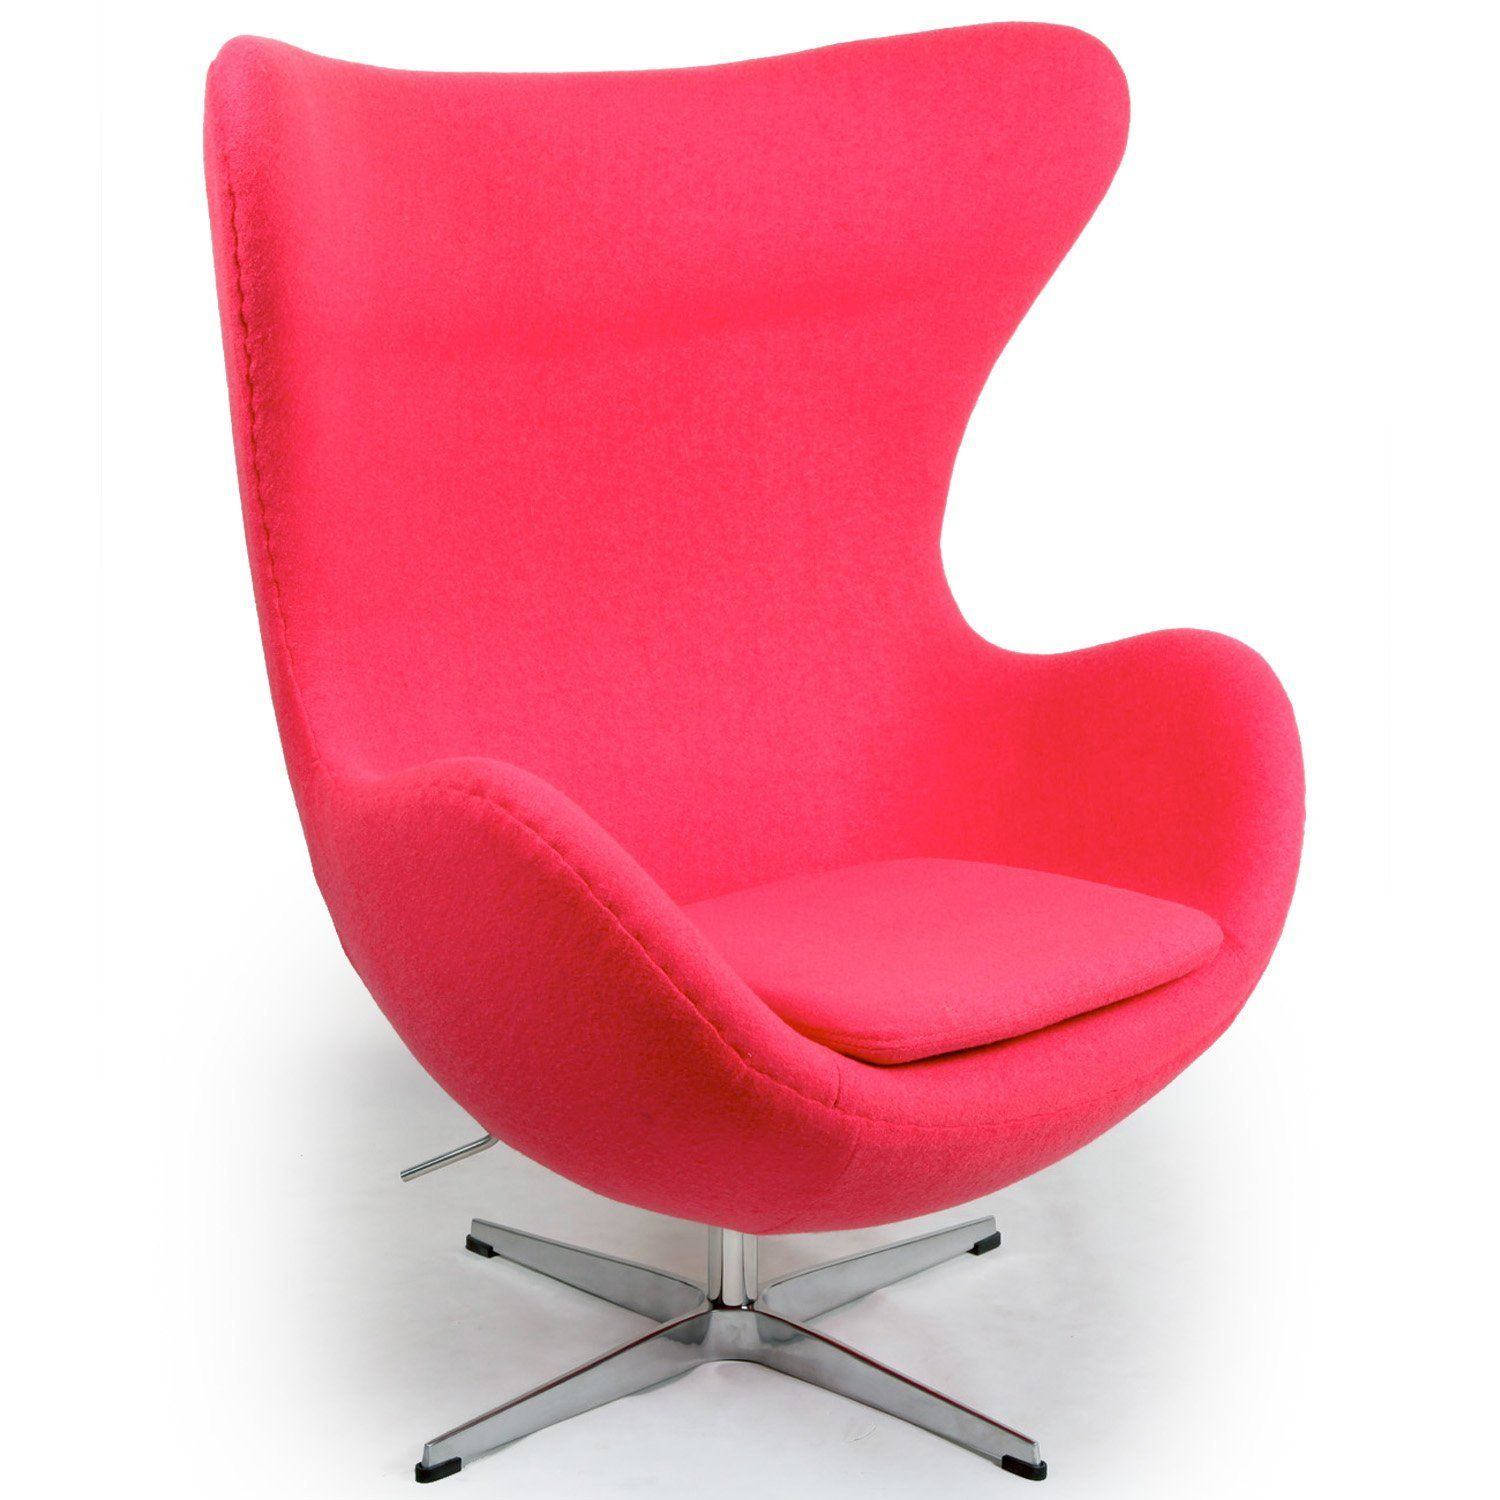 funky bedroom furniture. Funky Chairs For Teens | Pink Teen Girls: Kardiel Egg Chair, Bedroom Furniture O